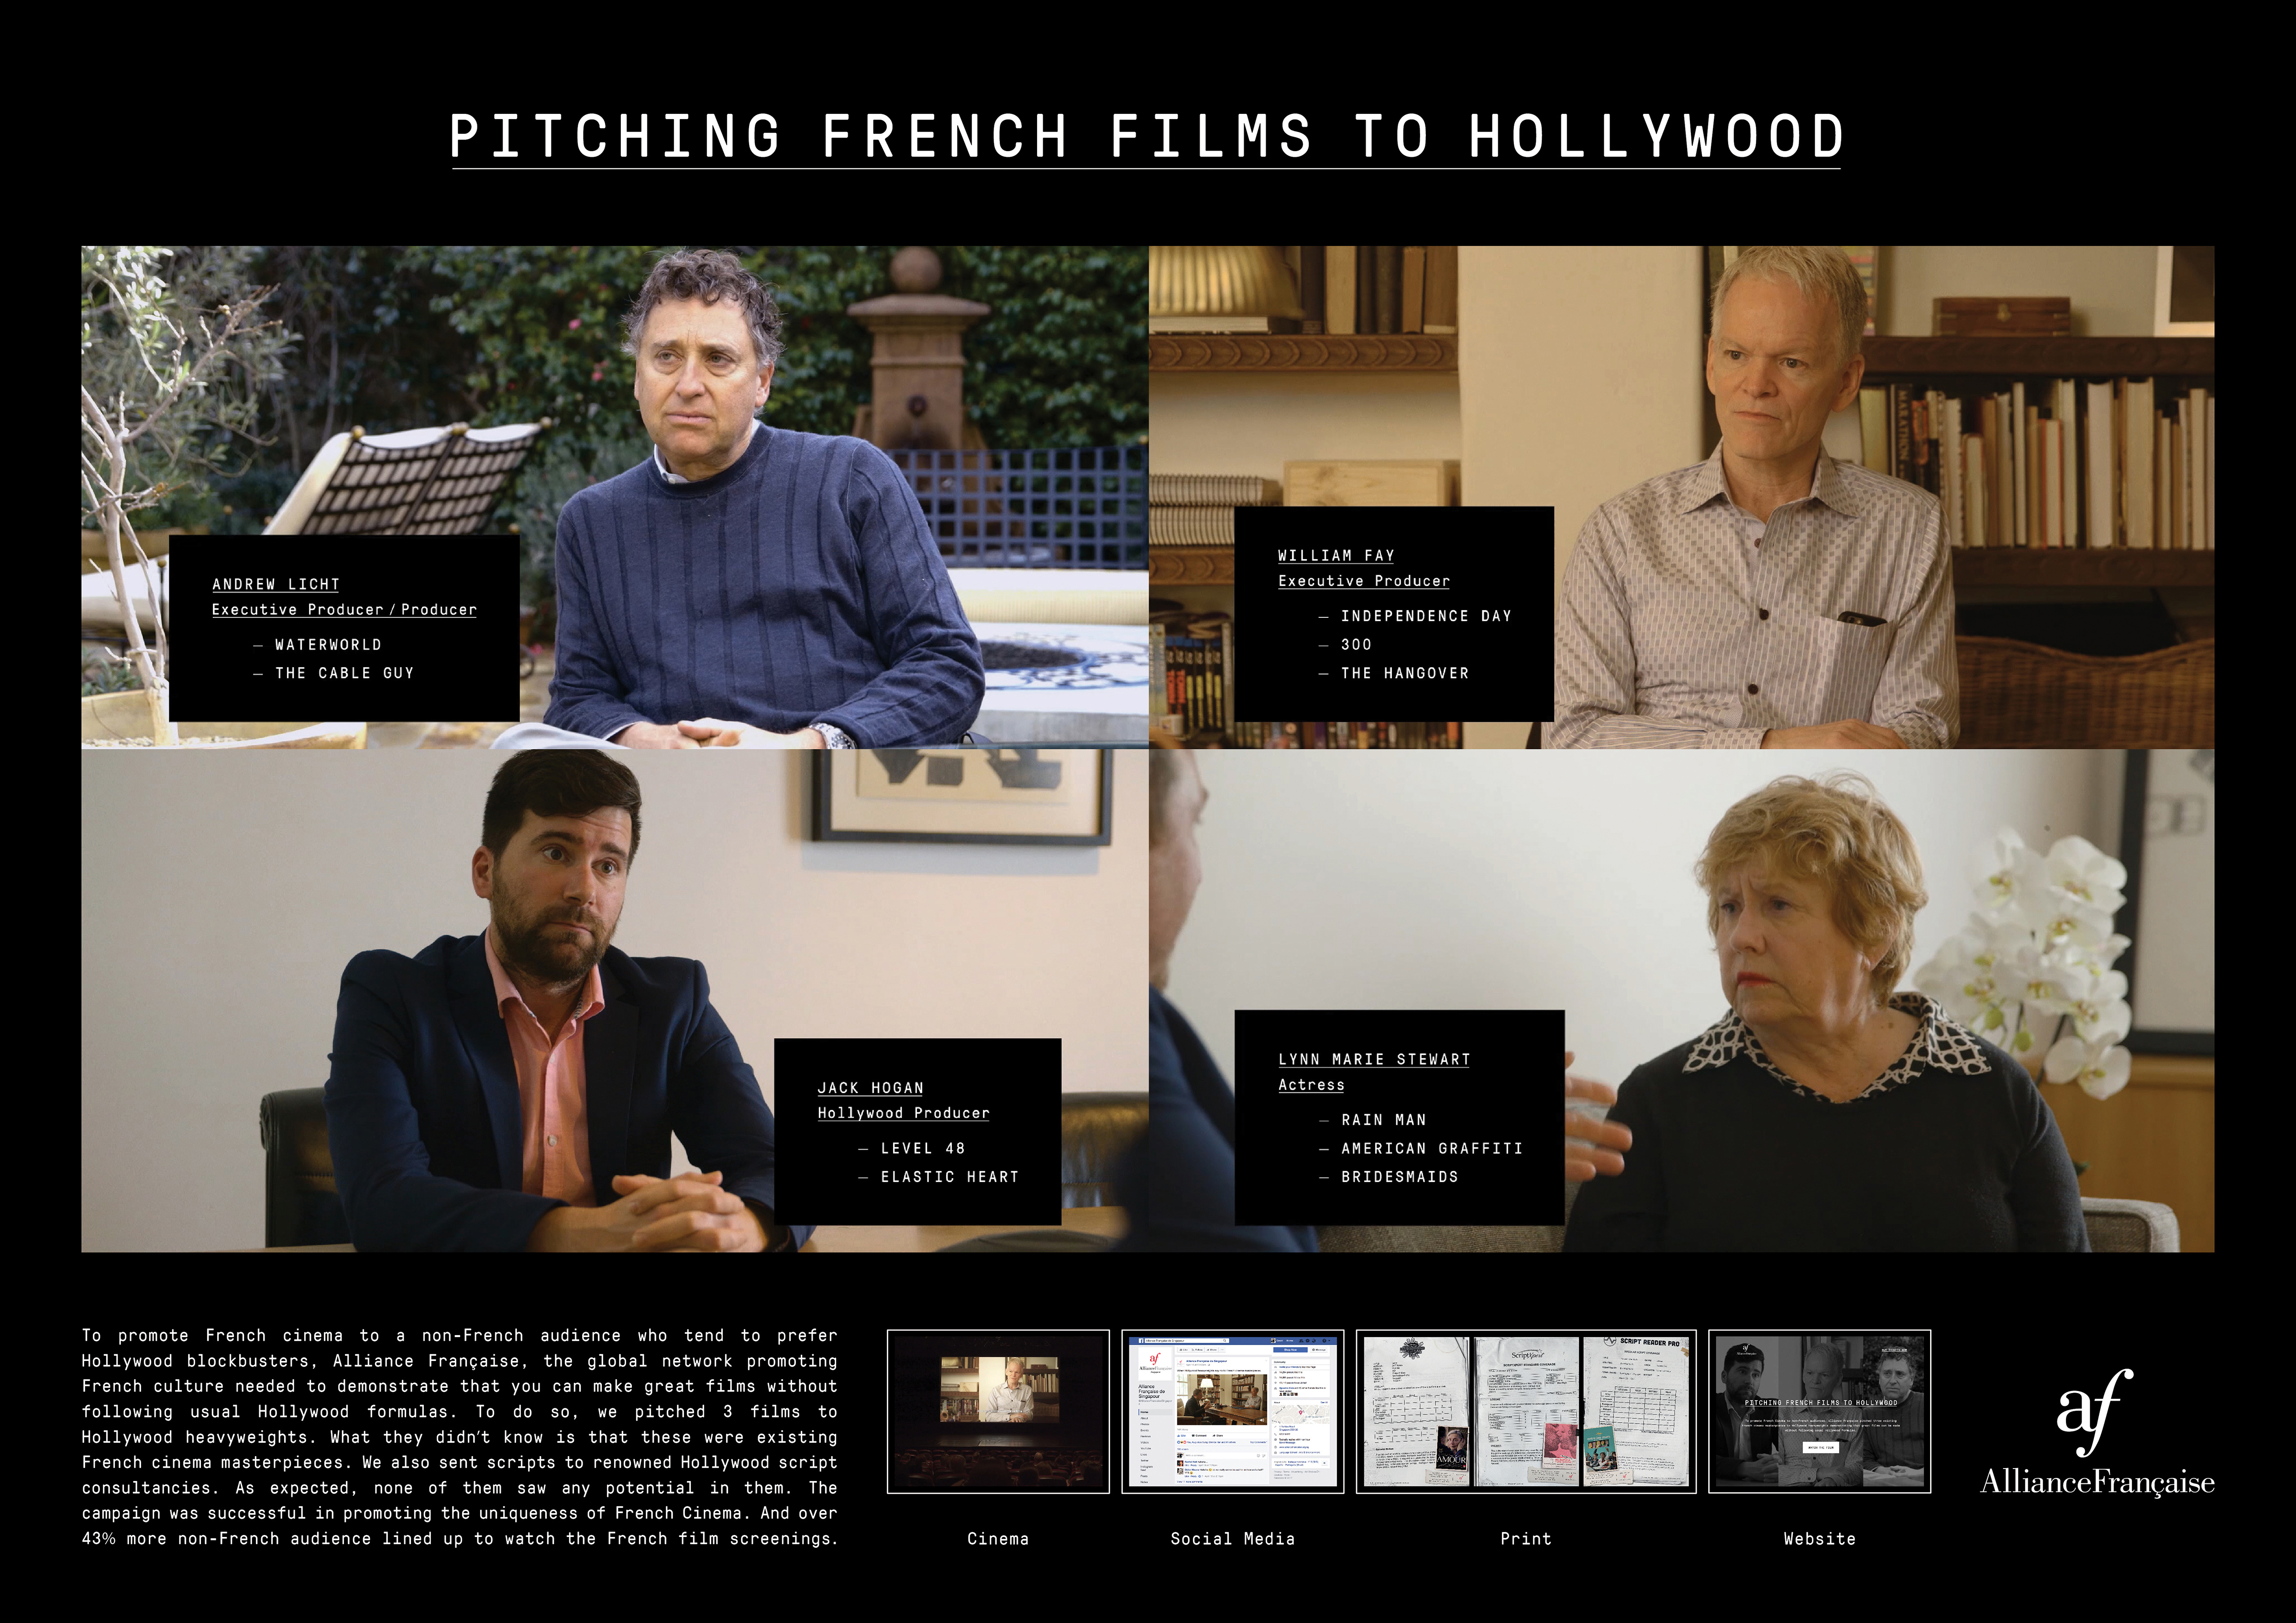 Pitching French Films to Hollywood Thumbnail